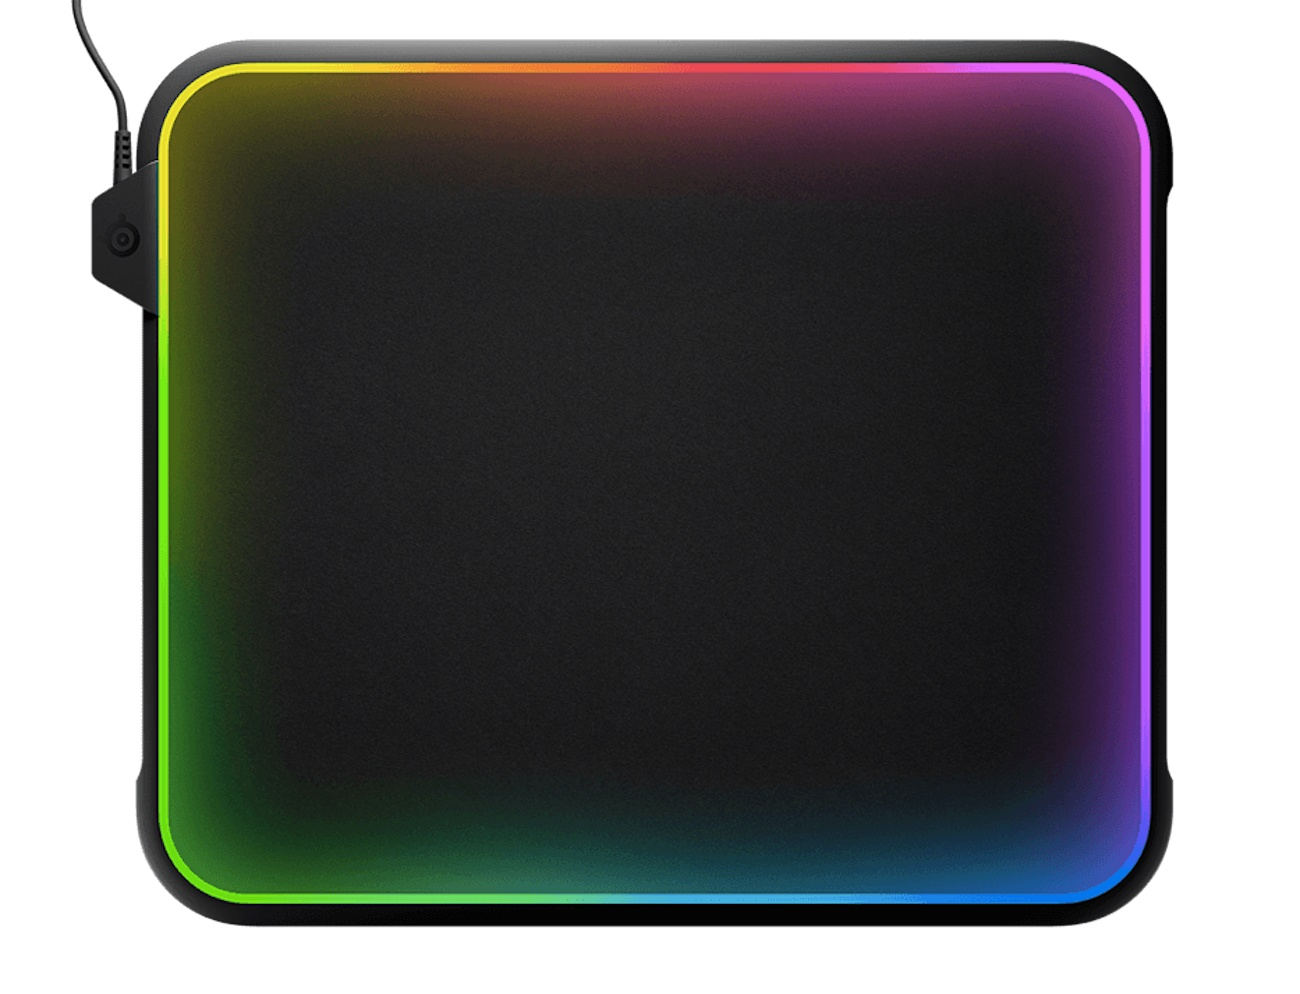 QcK Prism Gaming Mouse Pad